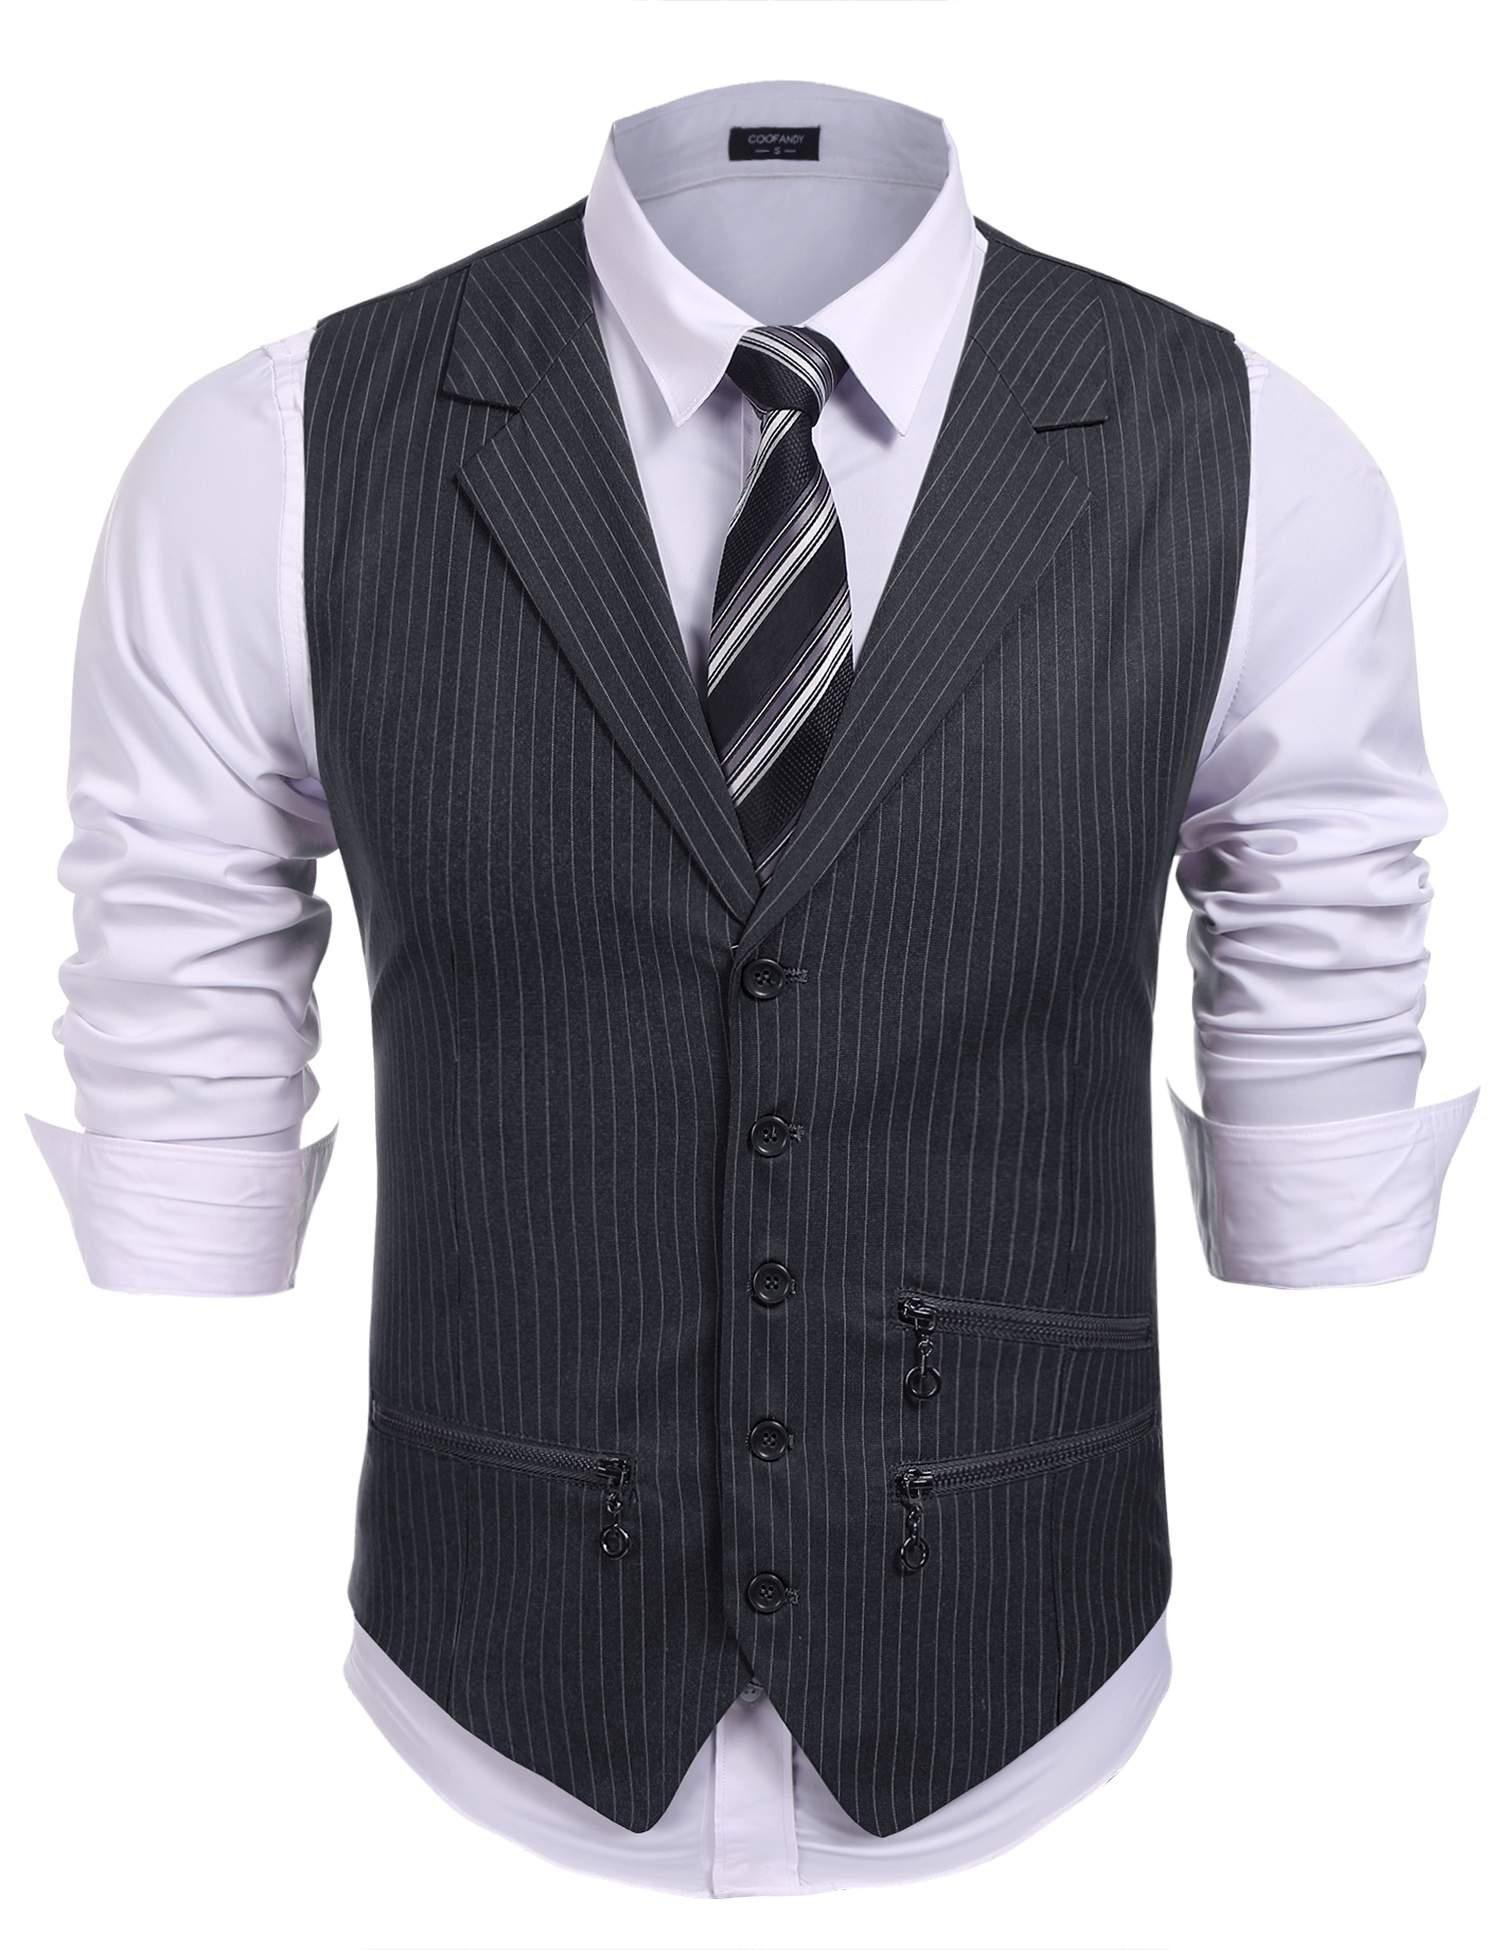 COOFANDY Men's Lapel Casual Waistcoat British Style Slim Fit,Striped Vest and Removable Hood